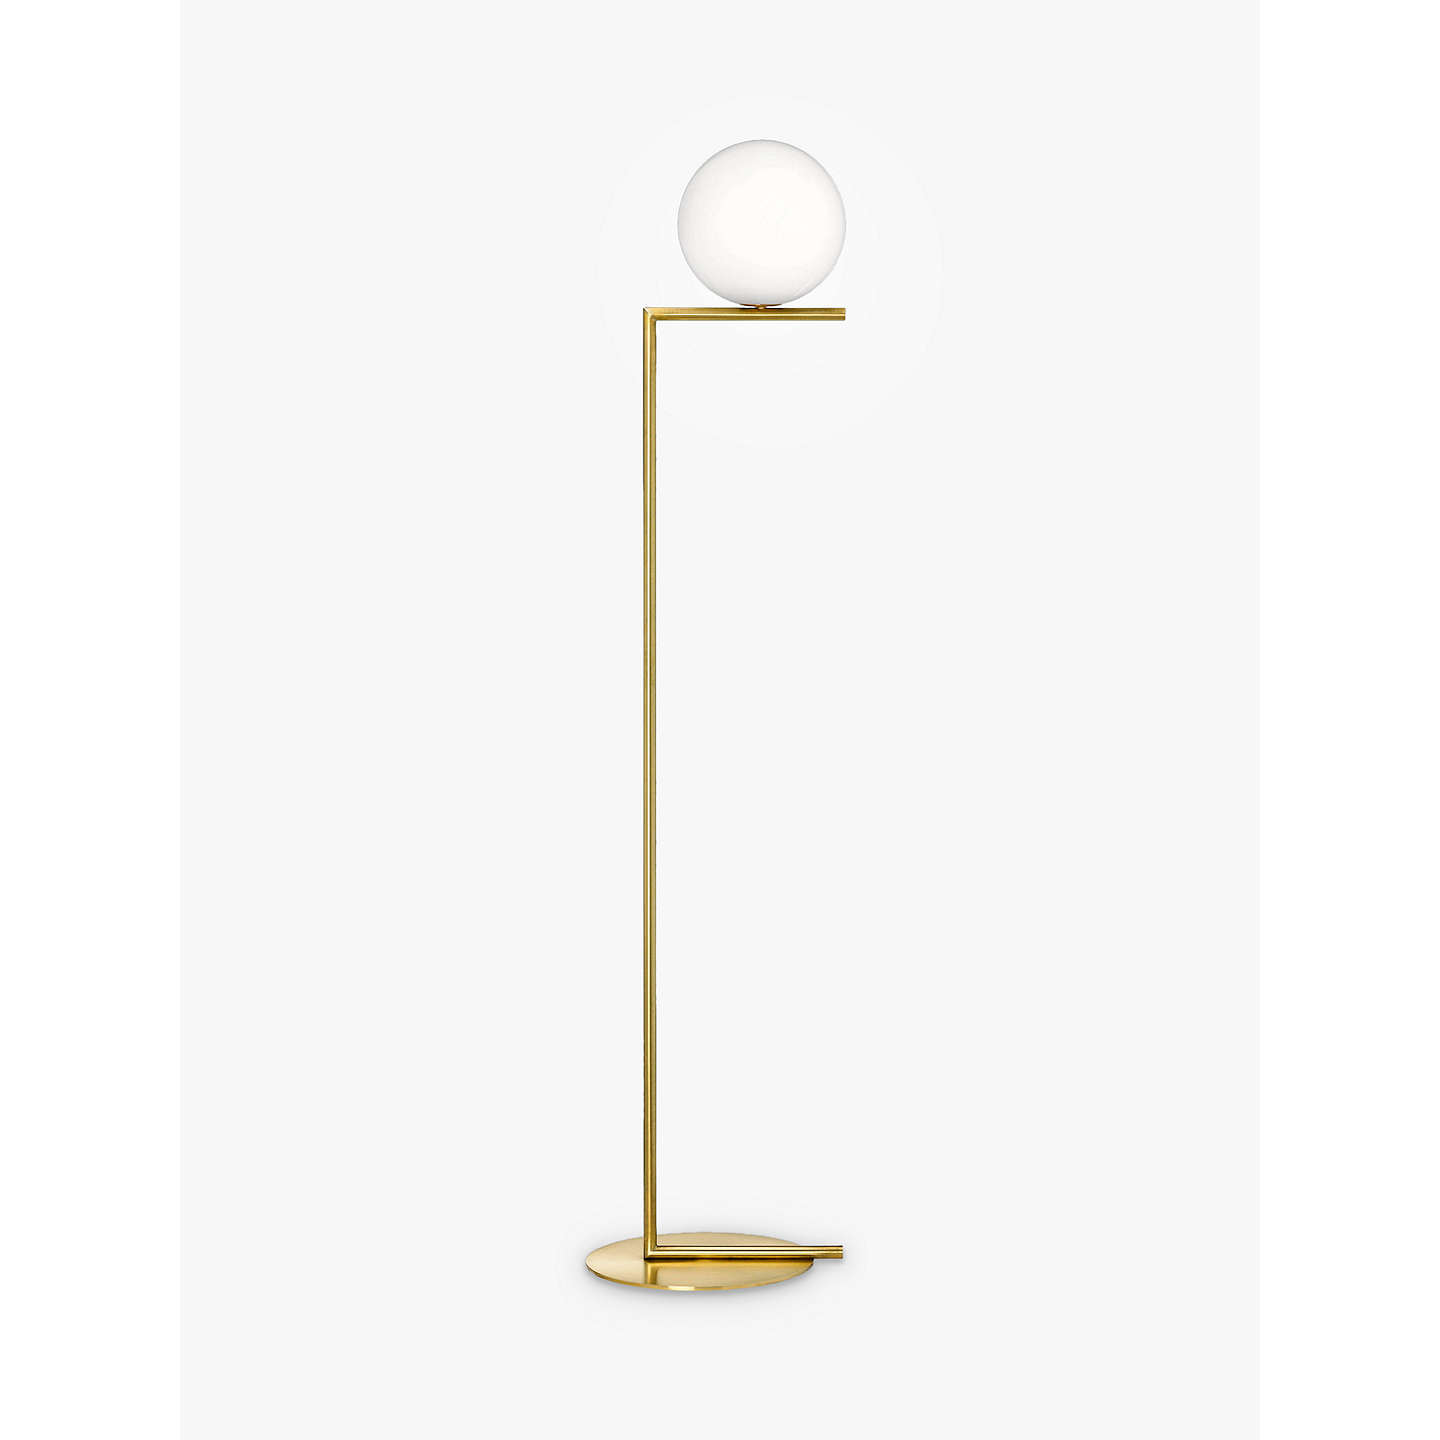 Floss ic f1 floor lamp 20cm at john lewis buyfloss ic f1 floor lamp 20cm brushed brass online at johnlewis mozeypictures Choice Image